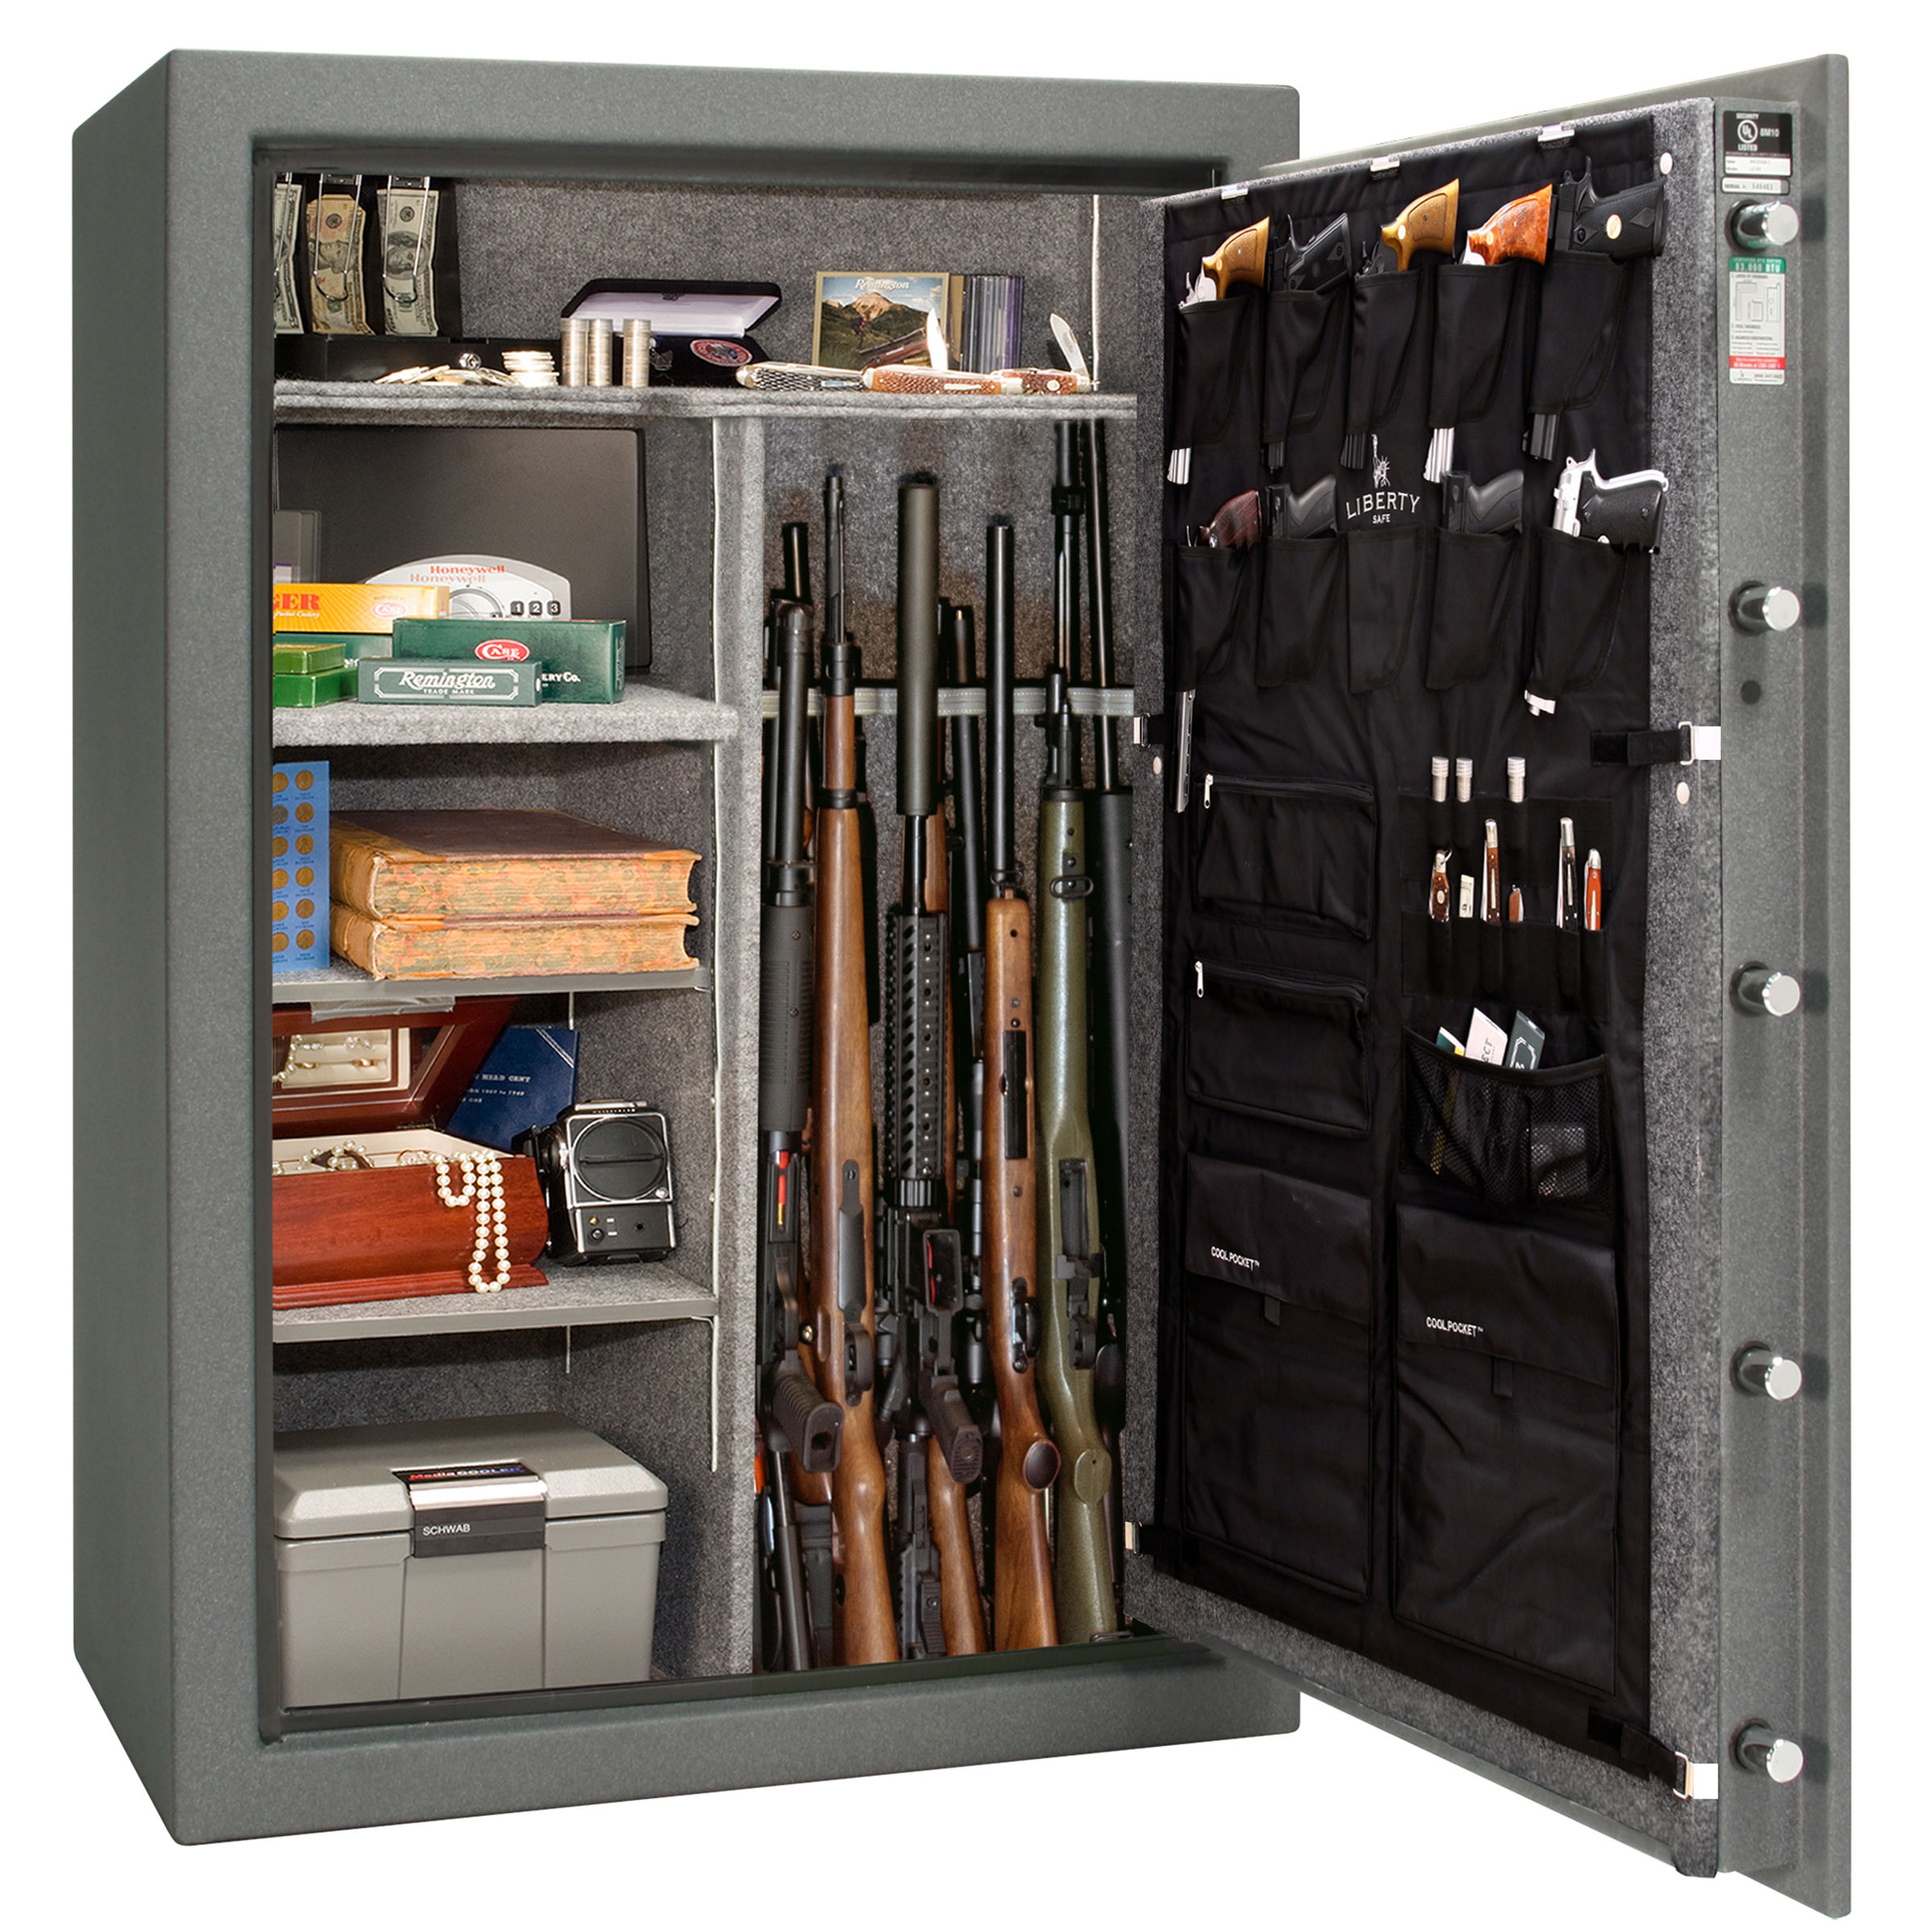 Safety For Safes : Safety gun storage on target in canada